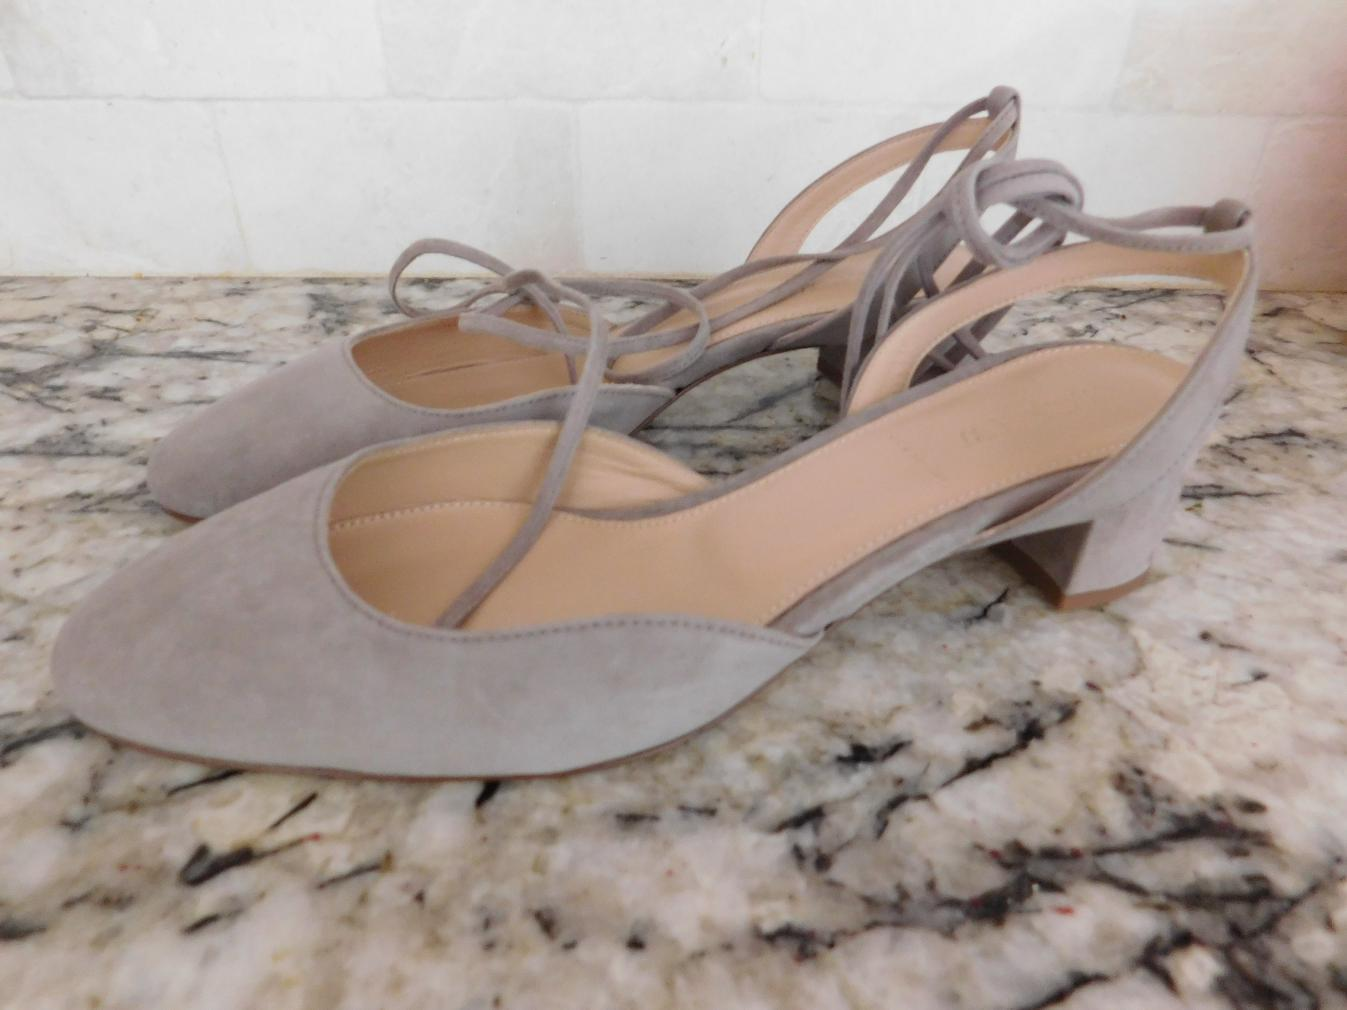 JCrew-178-Ankle-Wrap-Slingback-Heels-in-Suede-G4095-8-5-Antique-Dove-Grey-NEW